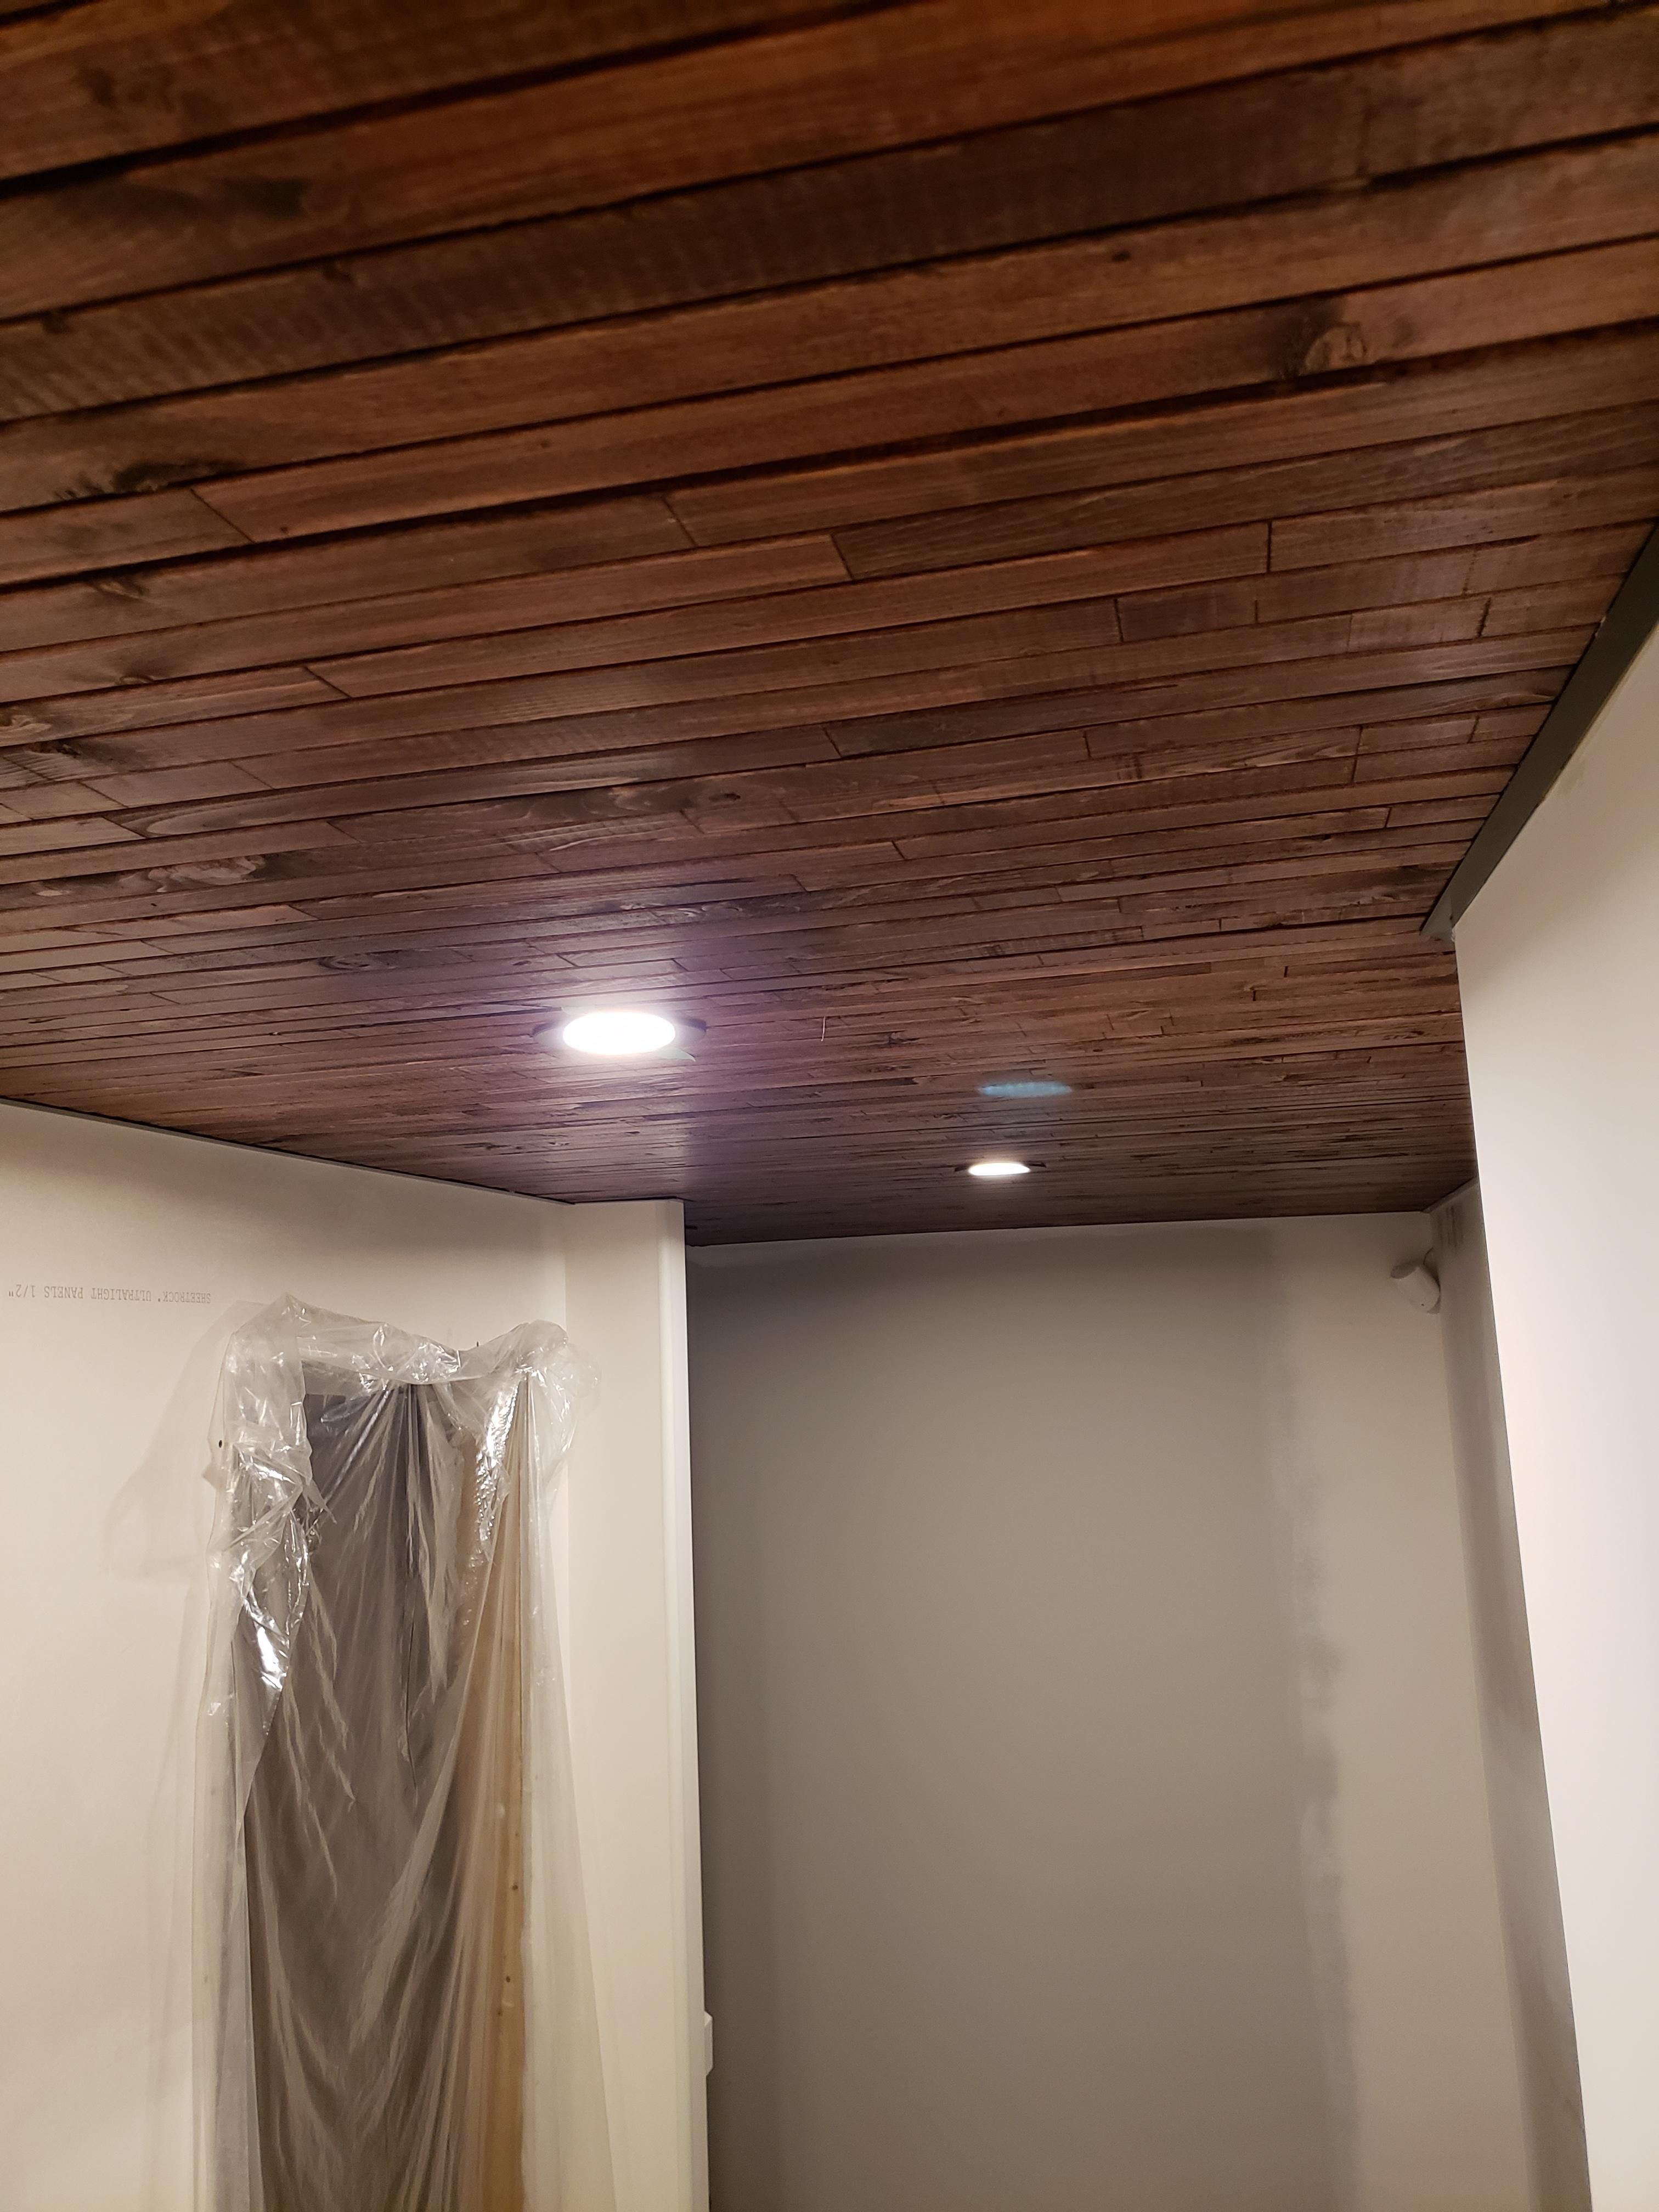 Re Post Of My Basement Hallway Stained Pine Ceiling As The Last One Was Taken Down Thanks To Everyone On My Last Post For The Stain On Pine Ceiling Pine Walls